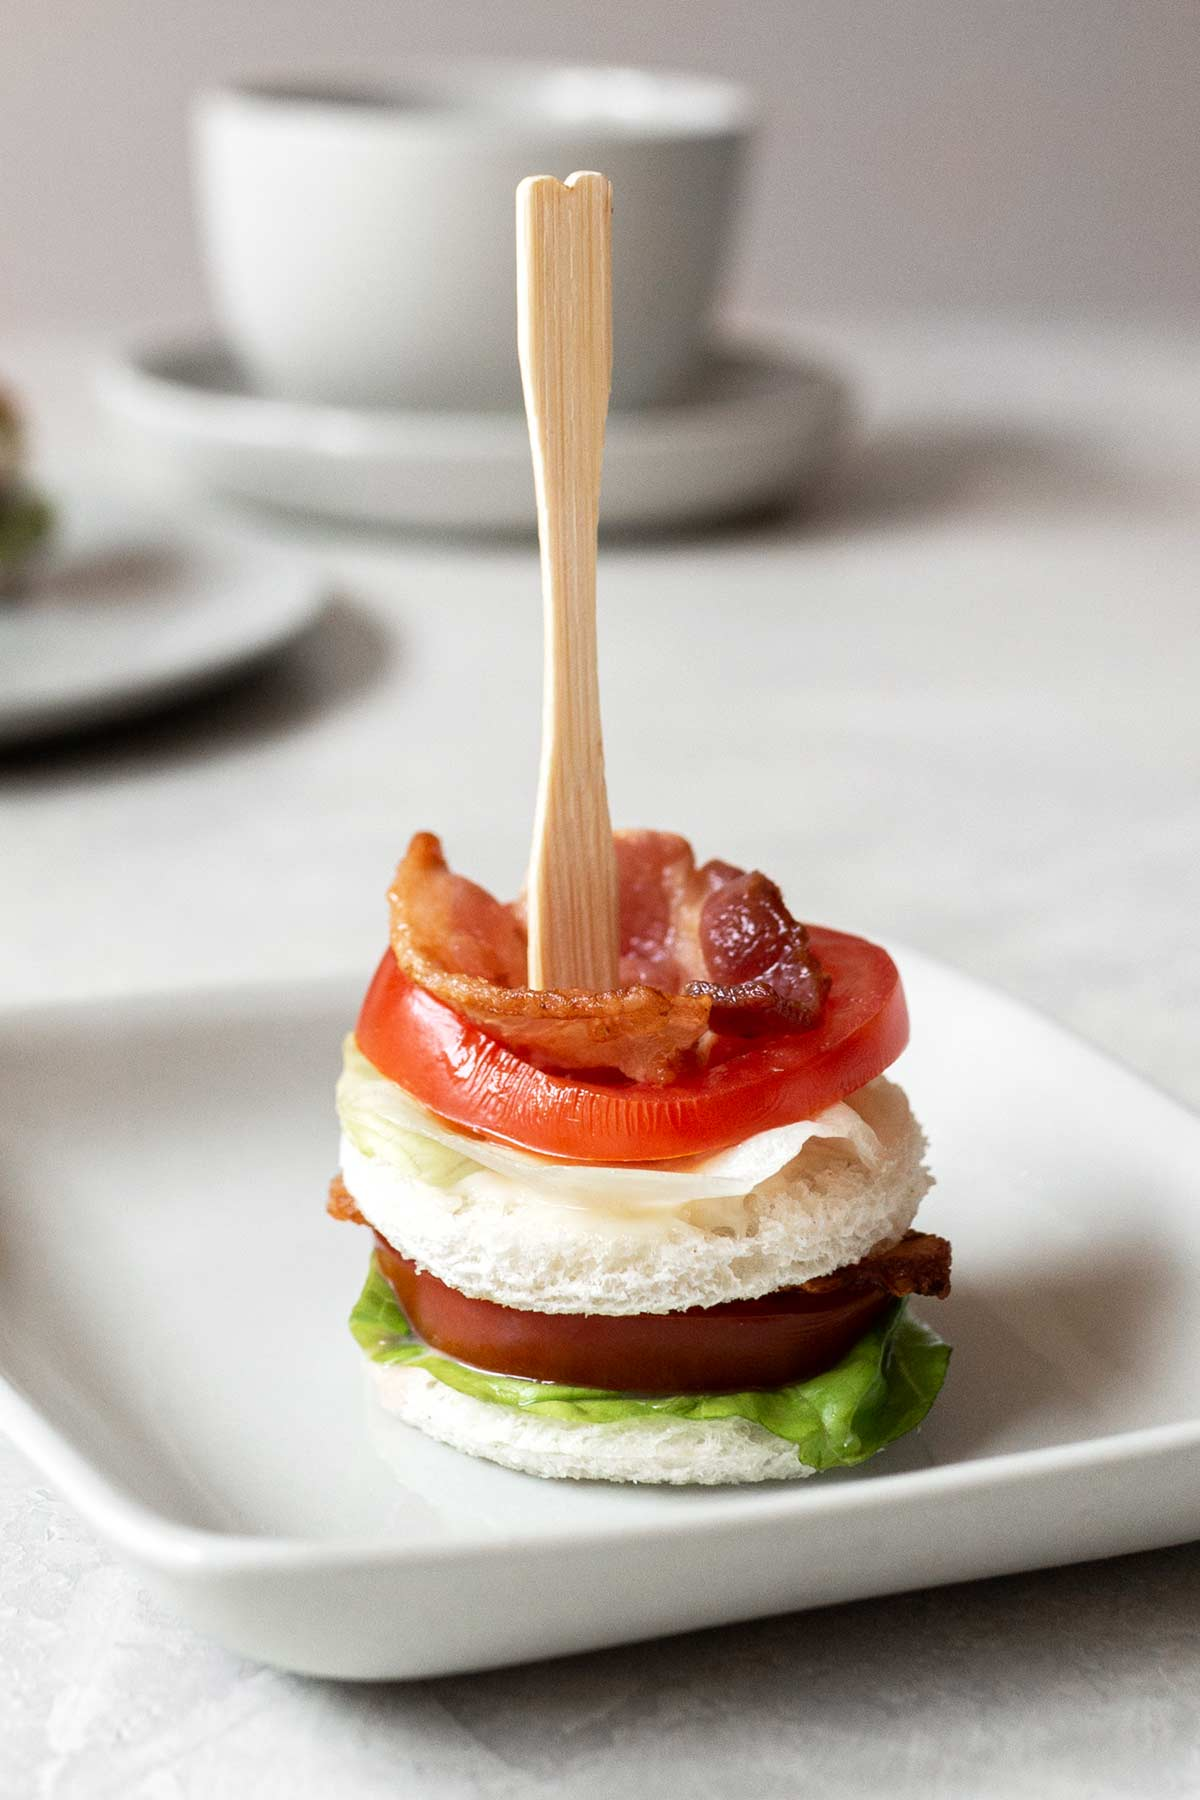 BLT tea sandwich with a cocktail fork on a small plate.